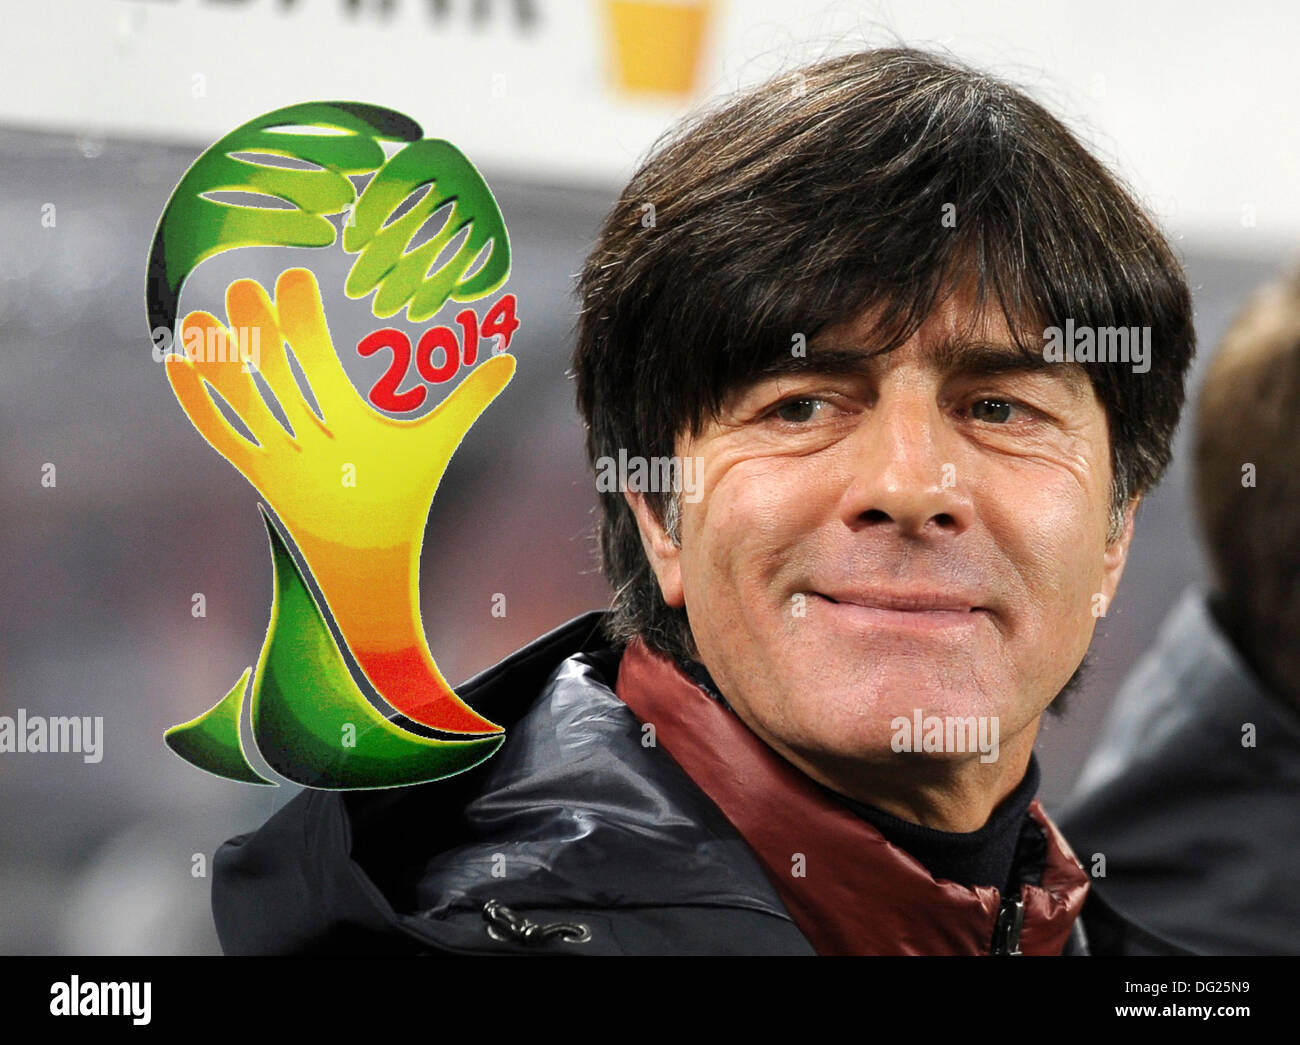 Cologne, Germany. 11th Oct, 2013. Qualifying match for  FIFA Football World Cup 2014 Brasil in RheinEnergie stadium, Germany vs Republic of Ireland 3:0 -- Germany's national manager Joachim Jogi Lšw (Loew) smiles at the Logo of Brasil 2014 -- digitally altered photo-- © kolvenbach/Alamy Live News - Stock Image